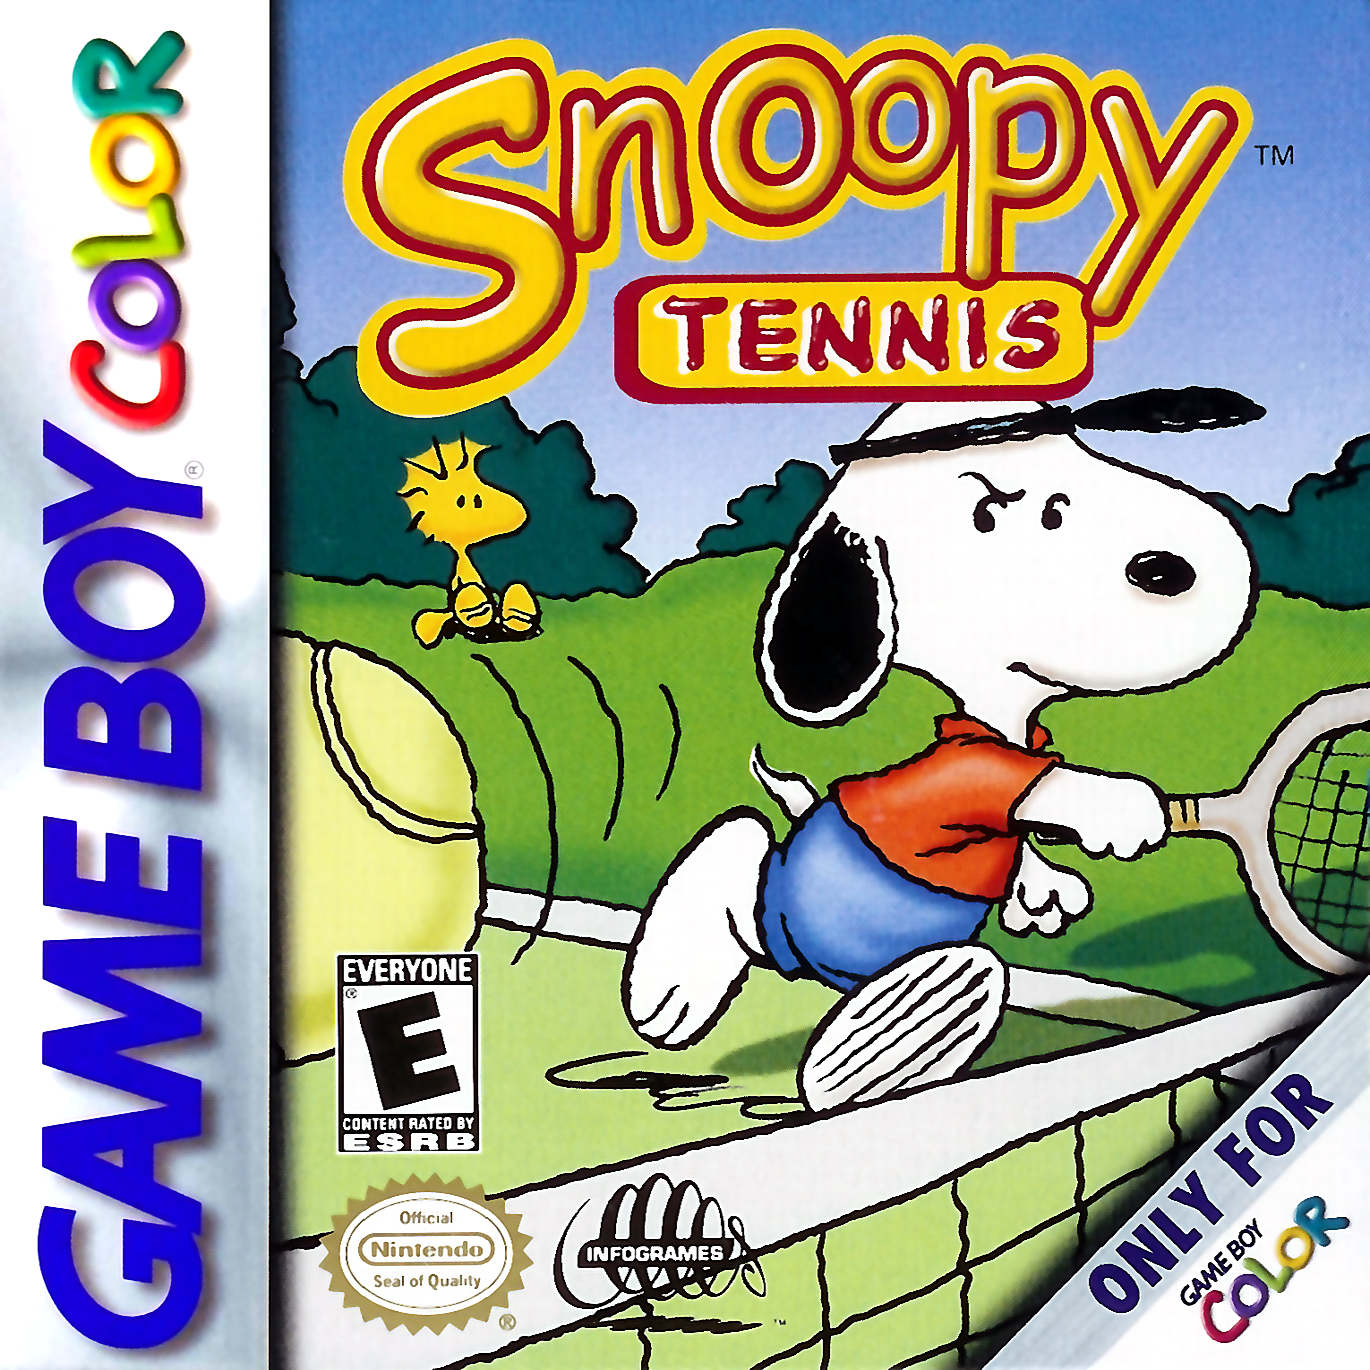 Game boy color online games - Play Snoopy Tennis Nintendo Game Boy Color Online